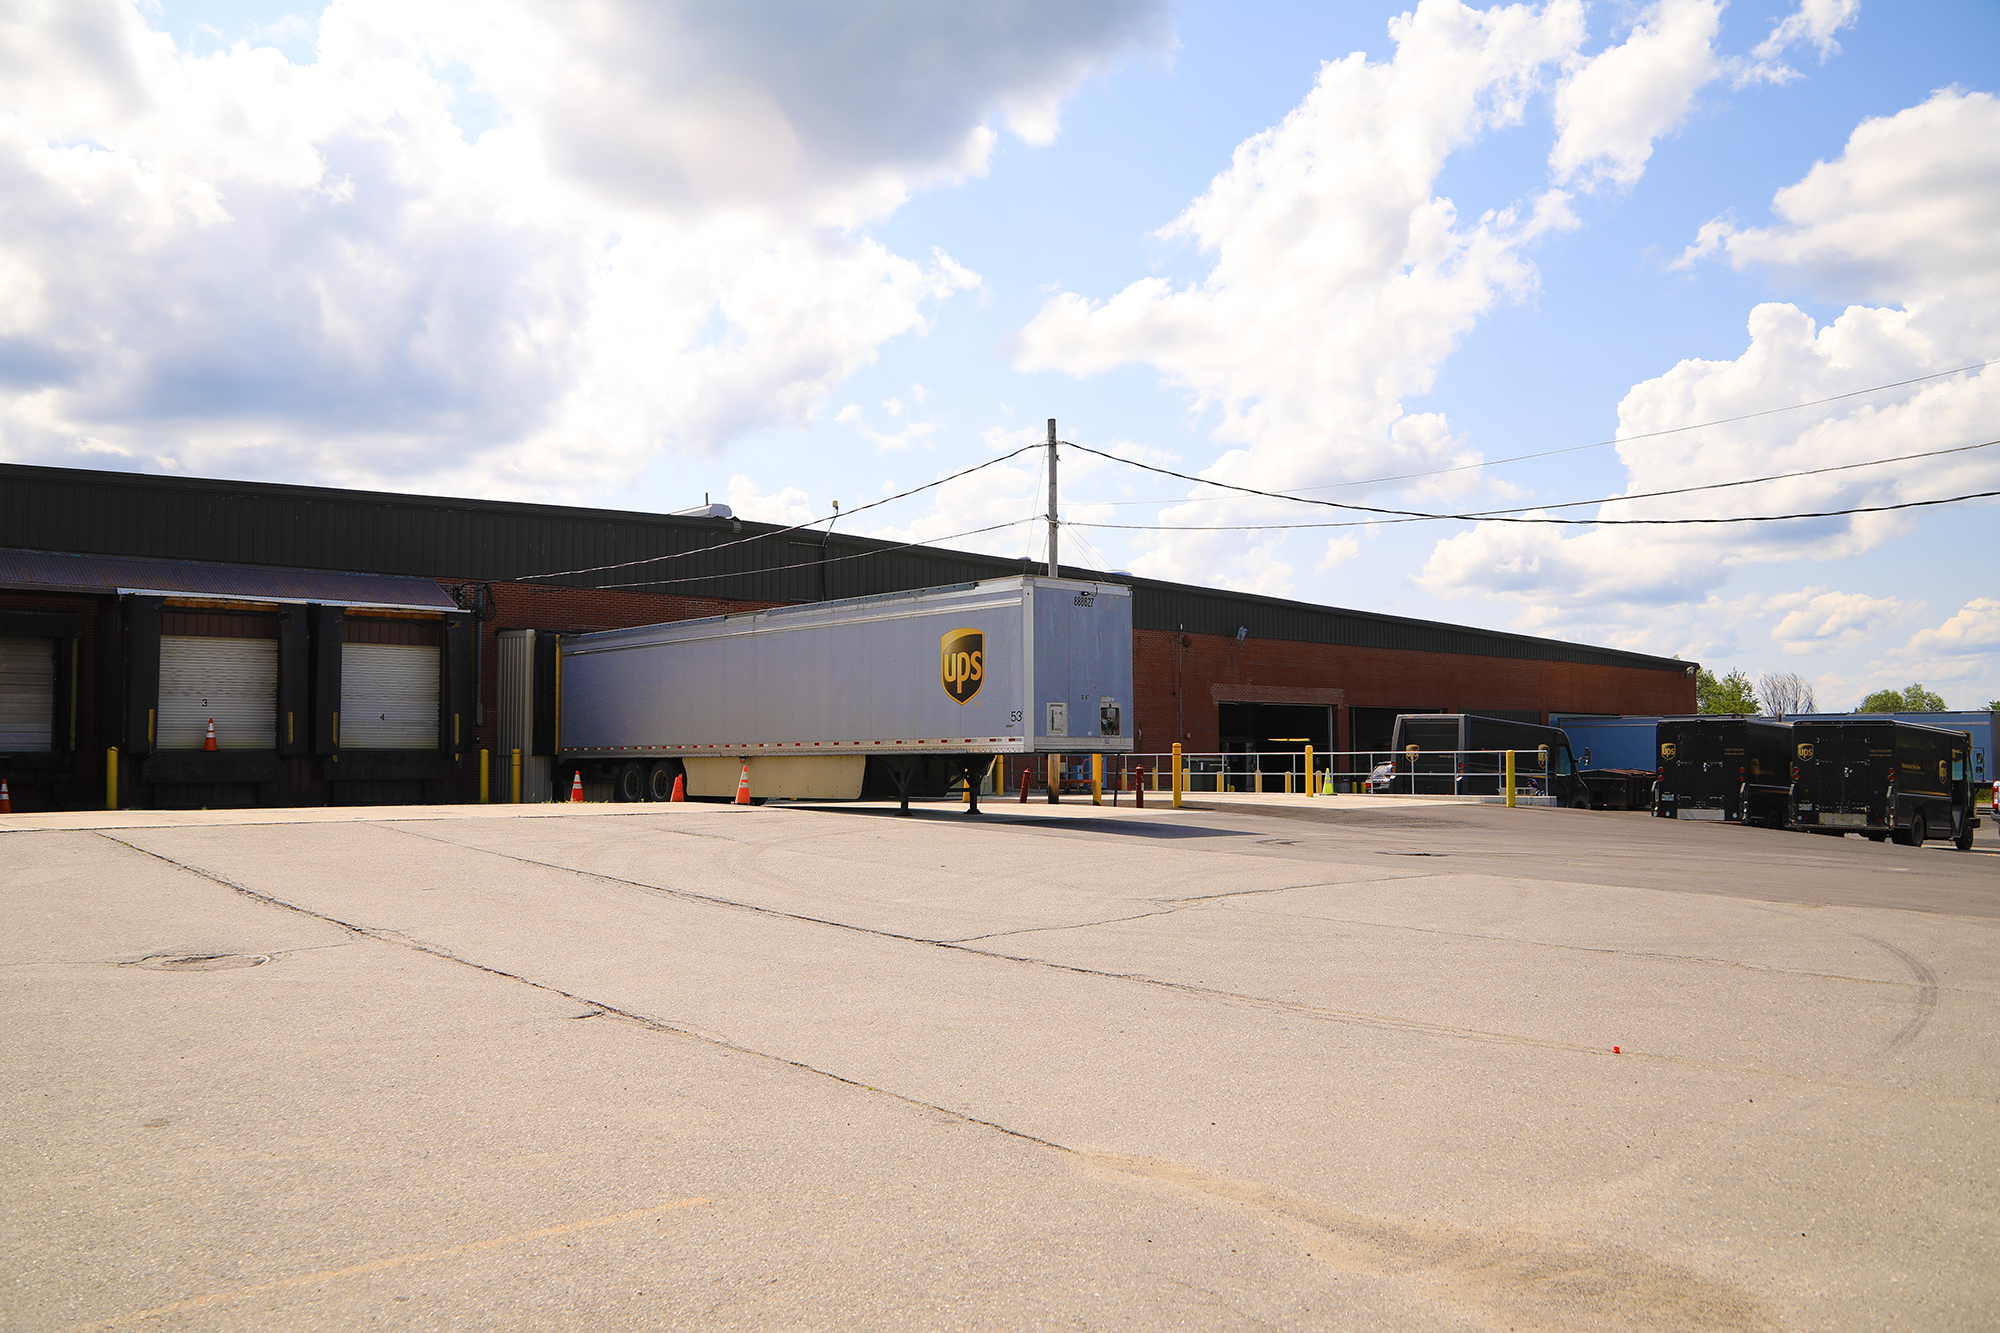 exterior photo of ups building